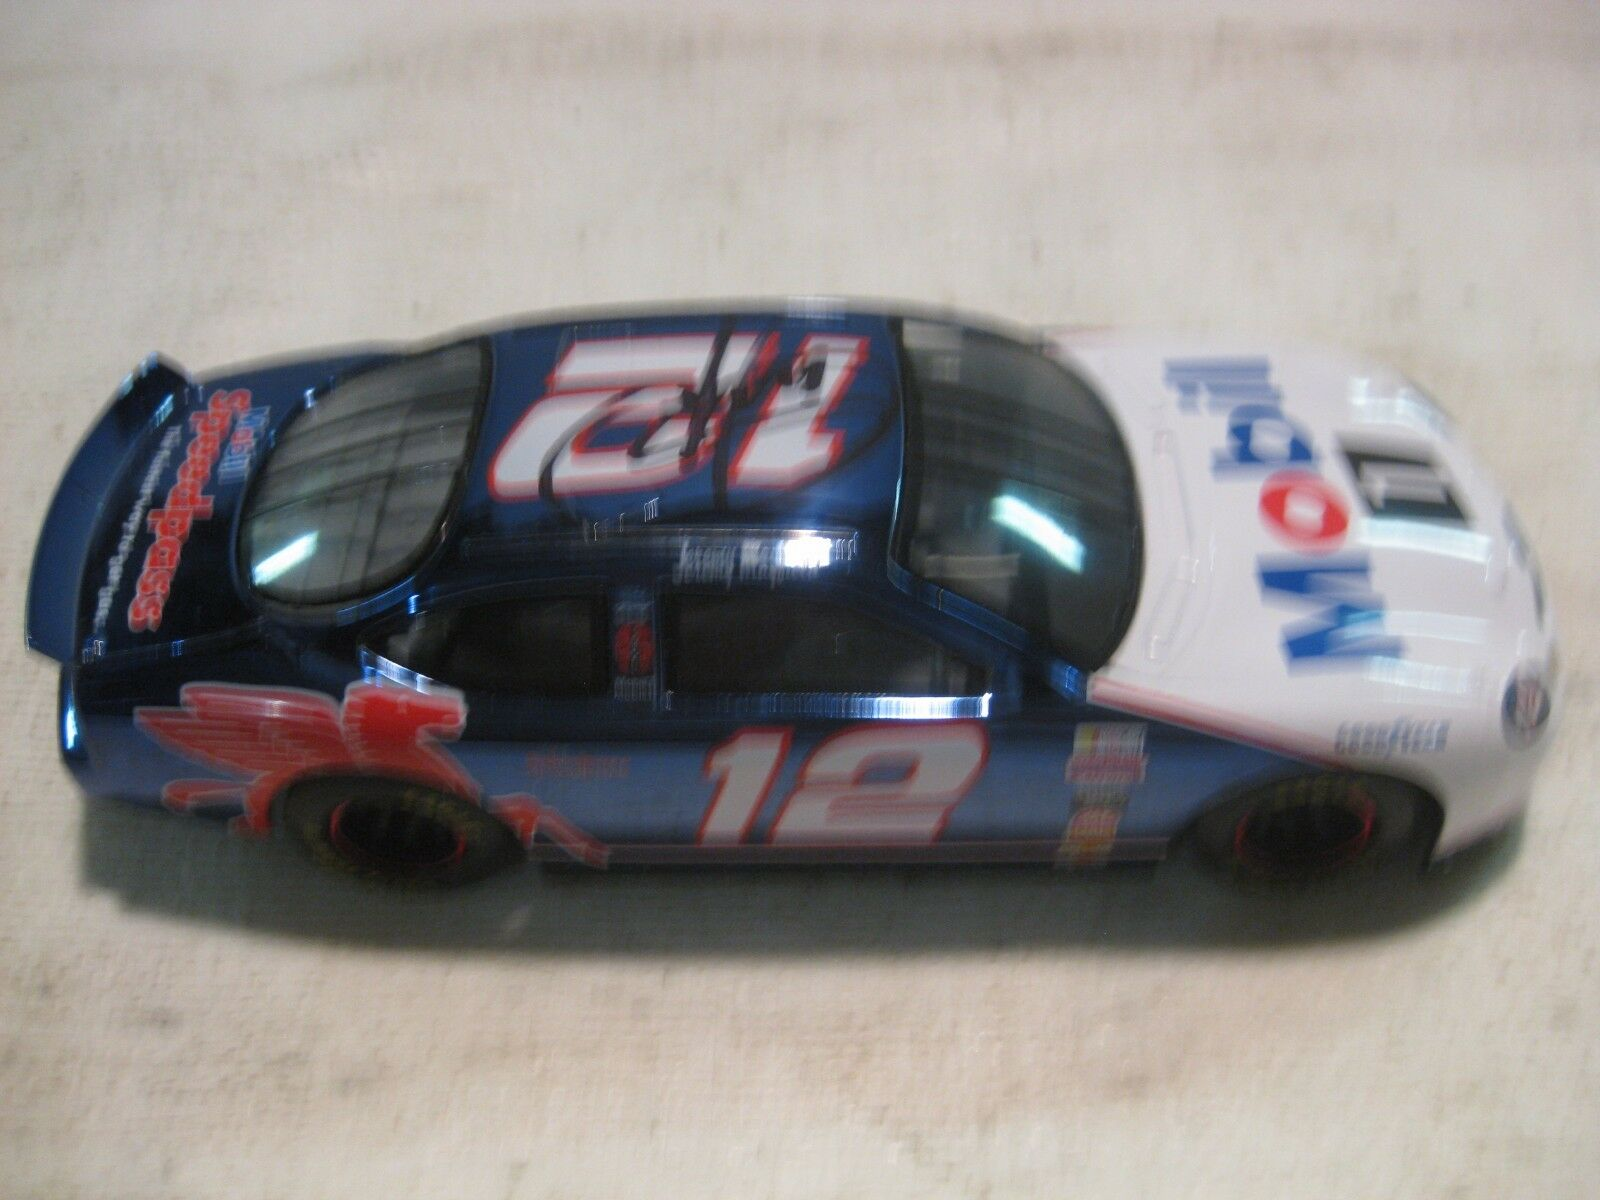 Nascar Jeremy Mayfield Mobil 1 Ford Taurus 124 Scale Diecast RC 1998   dc663